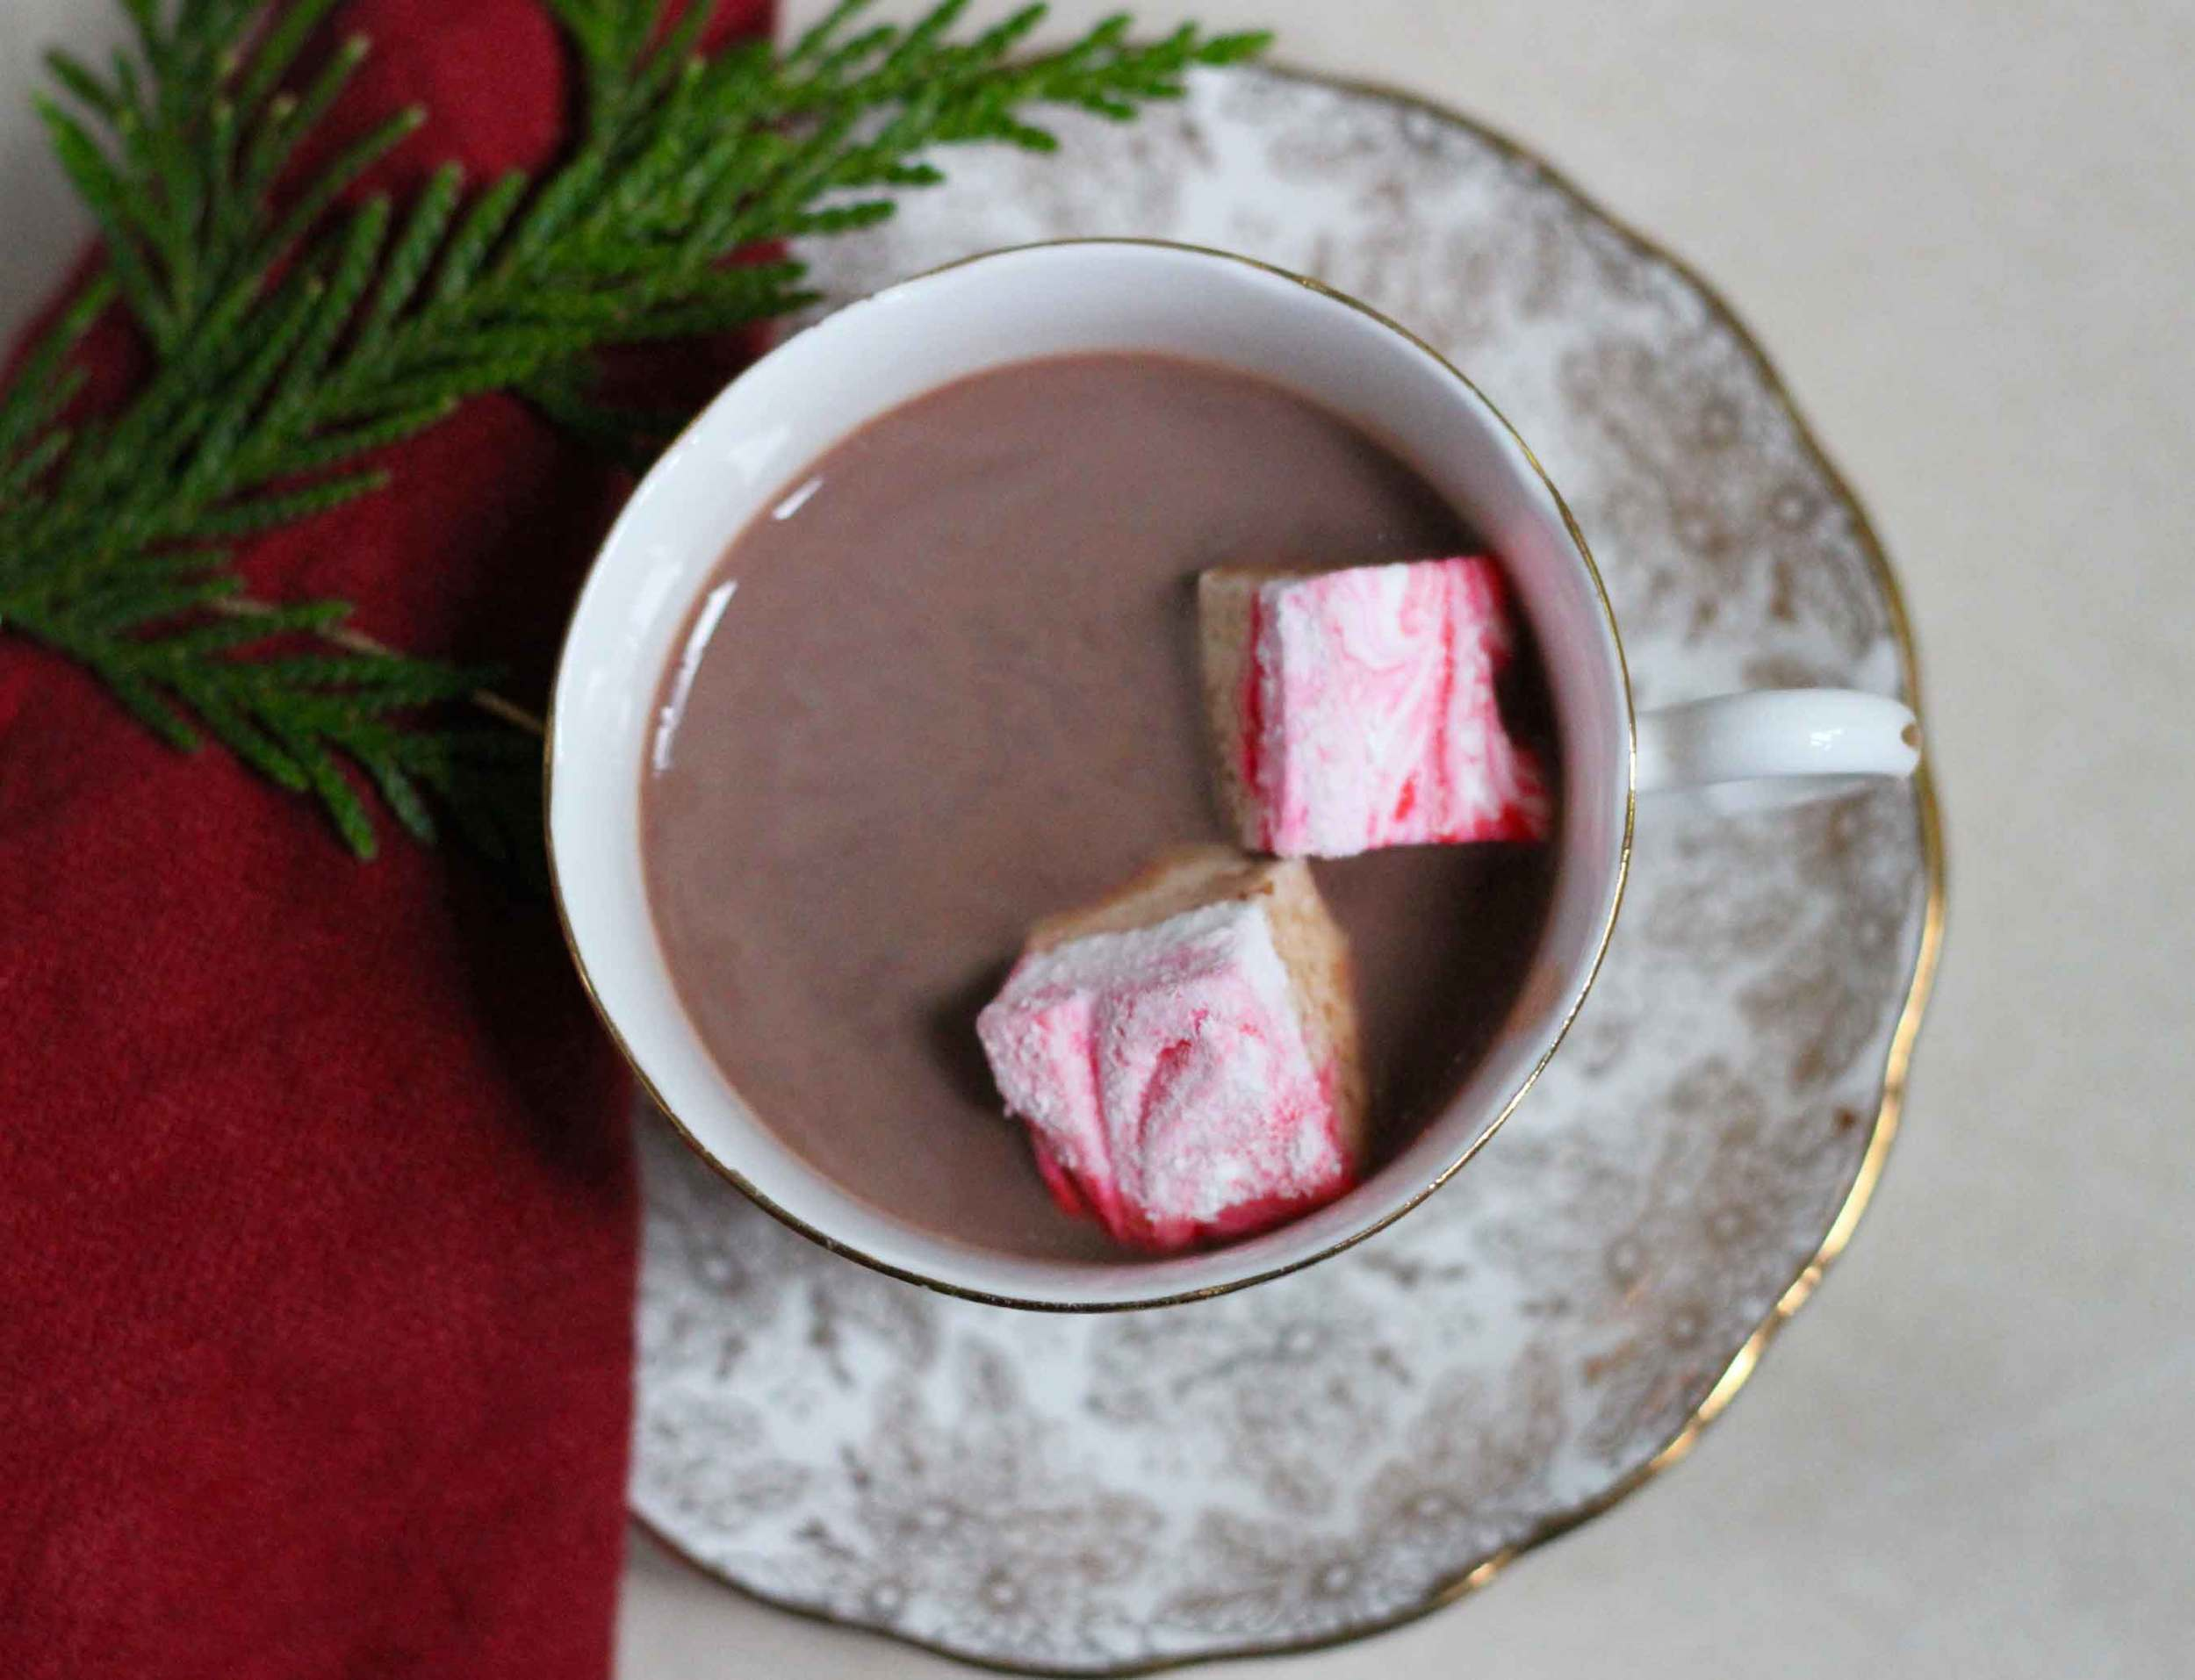 cocoa-mallow-top-view.jpg